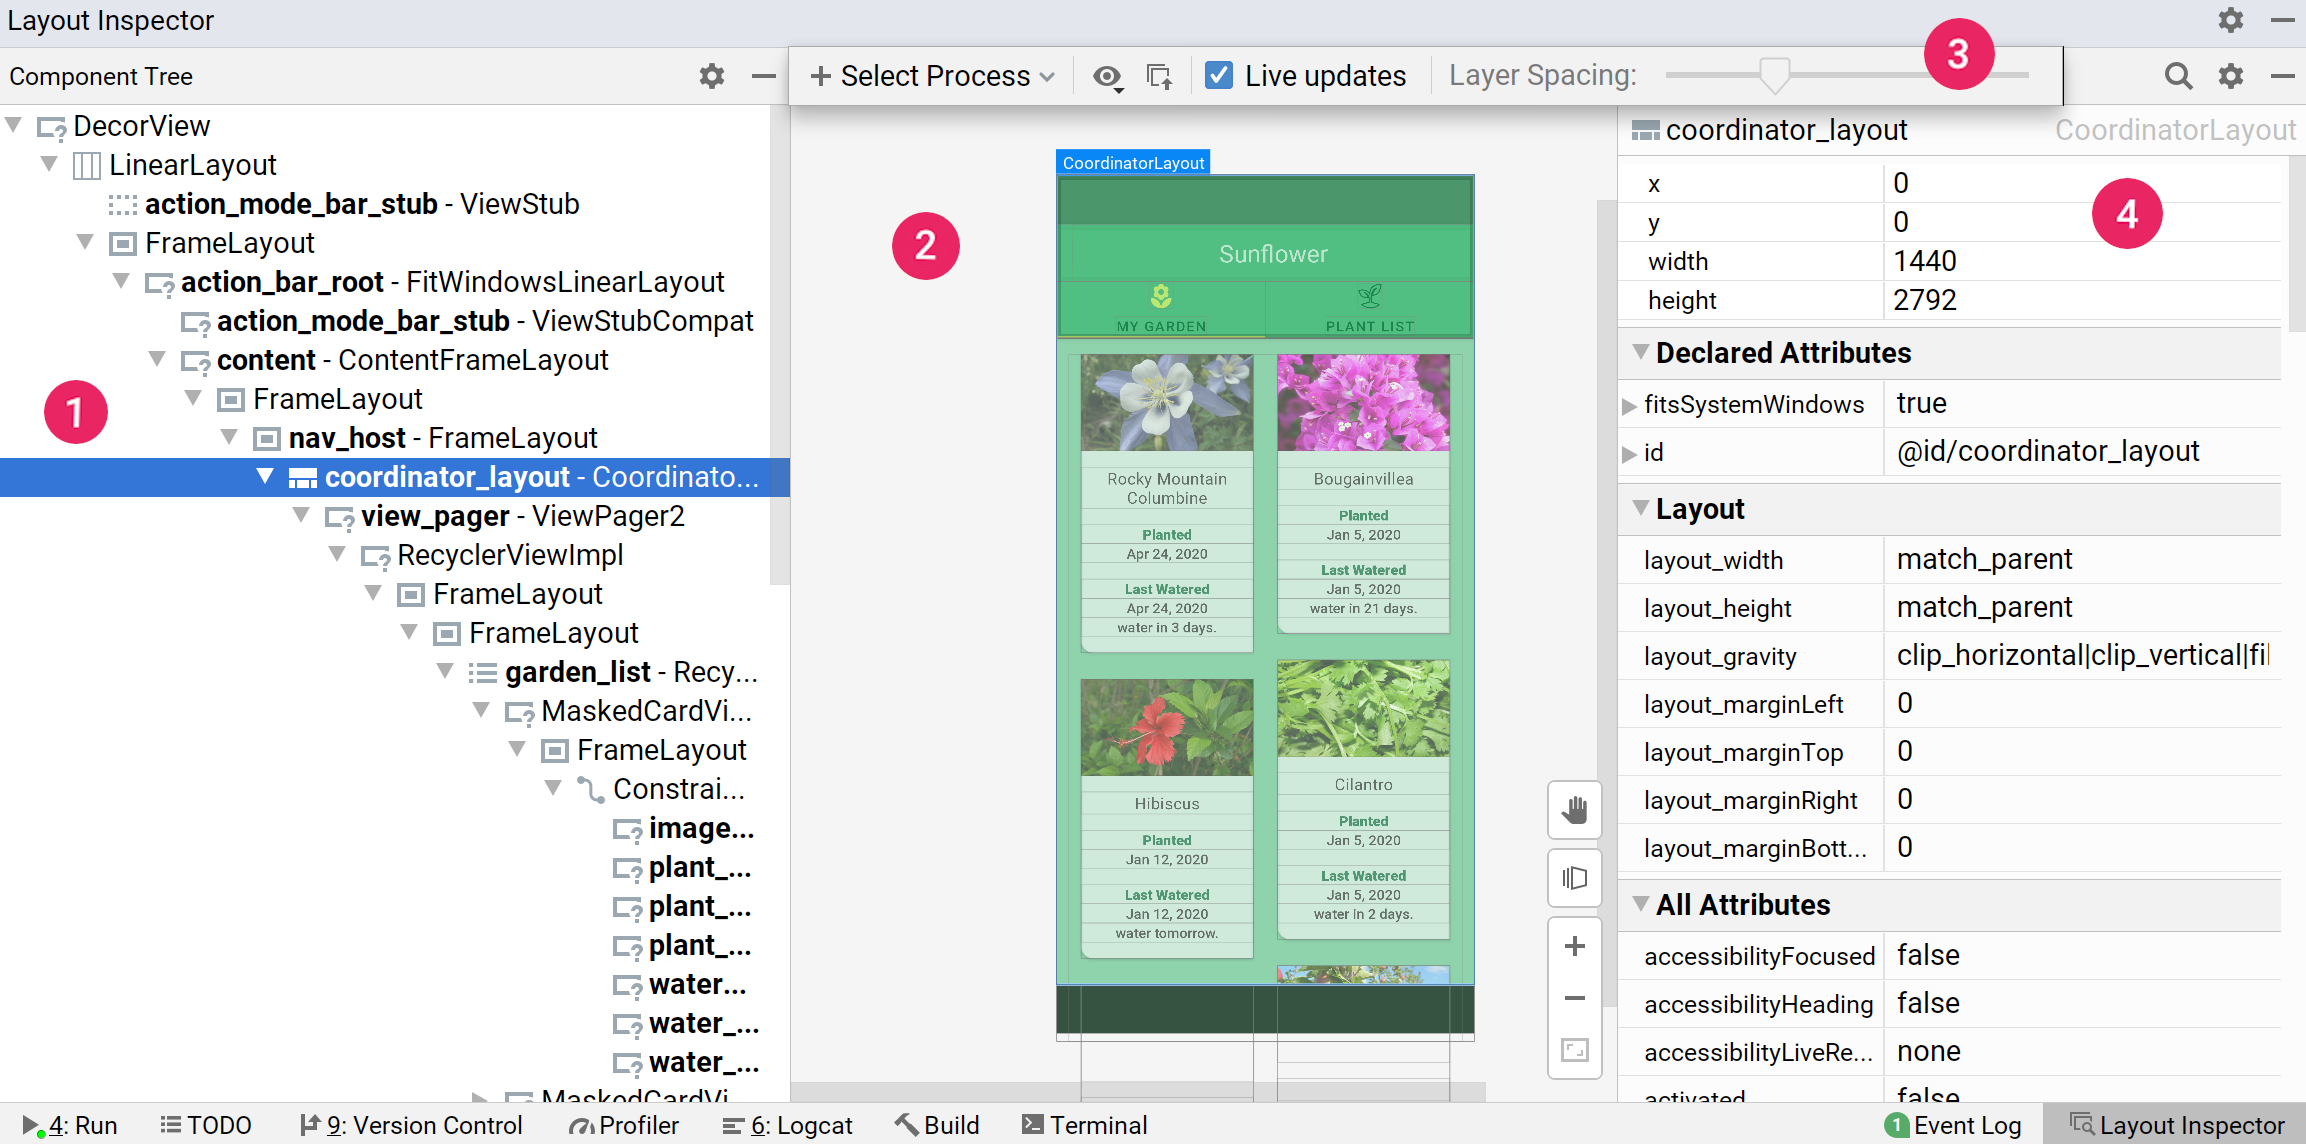 Screenshot of the Layout Inspector with labels indicating Component Tree, Layout Inspector toolbar, Layout Display,                                                                    and Attributes